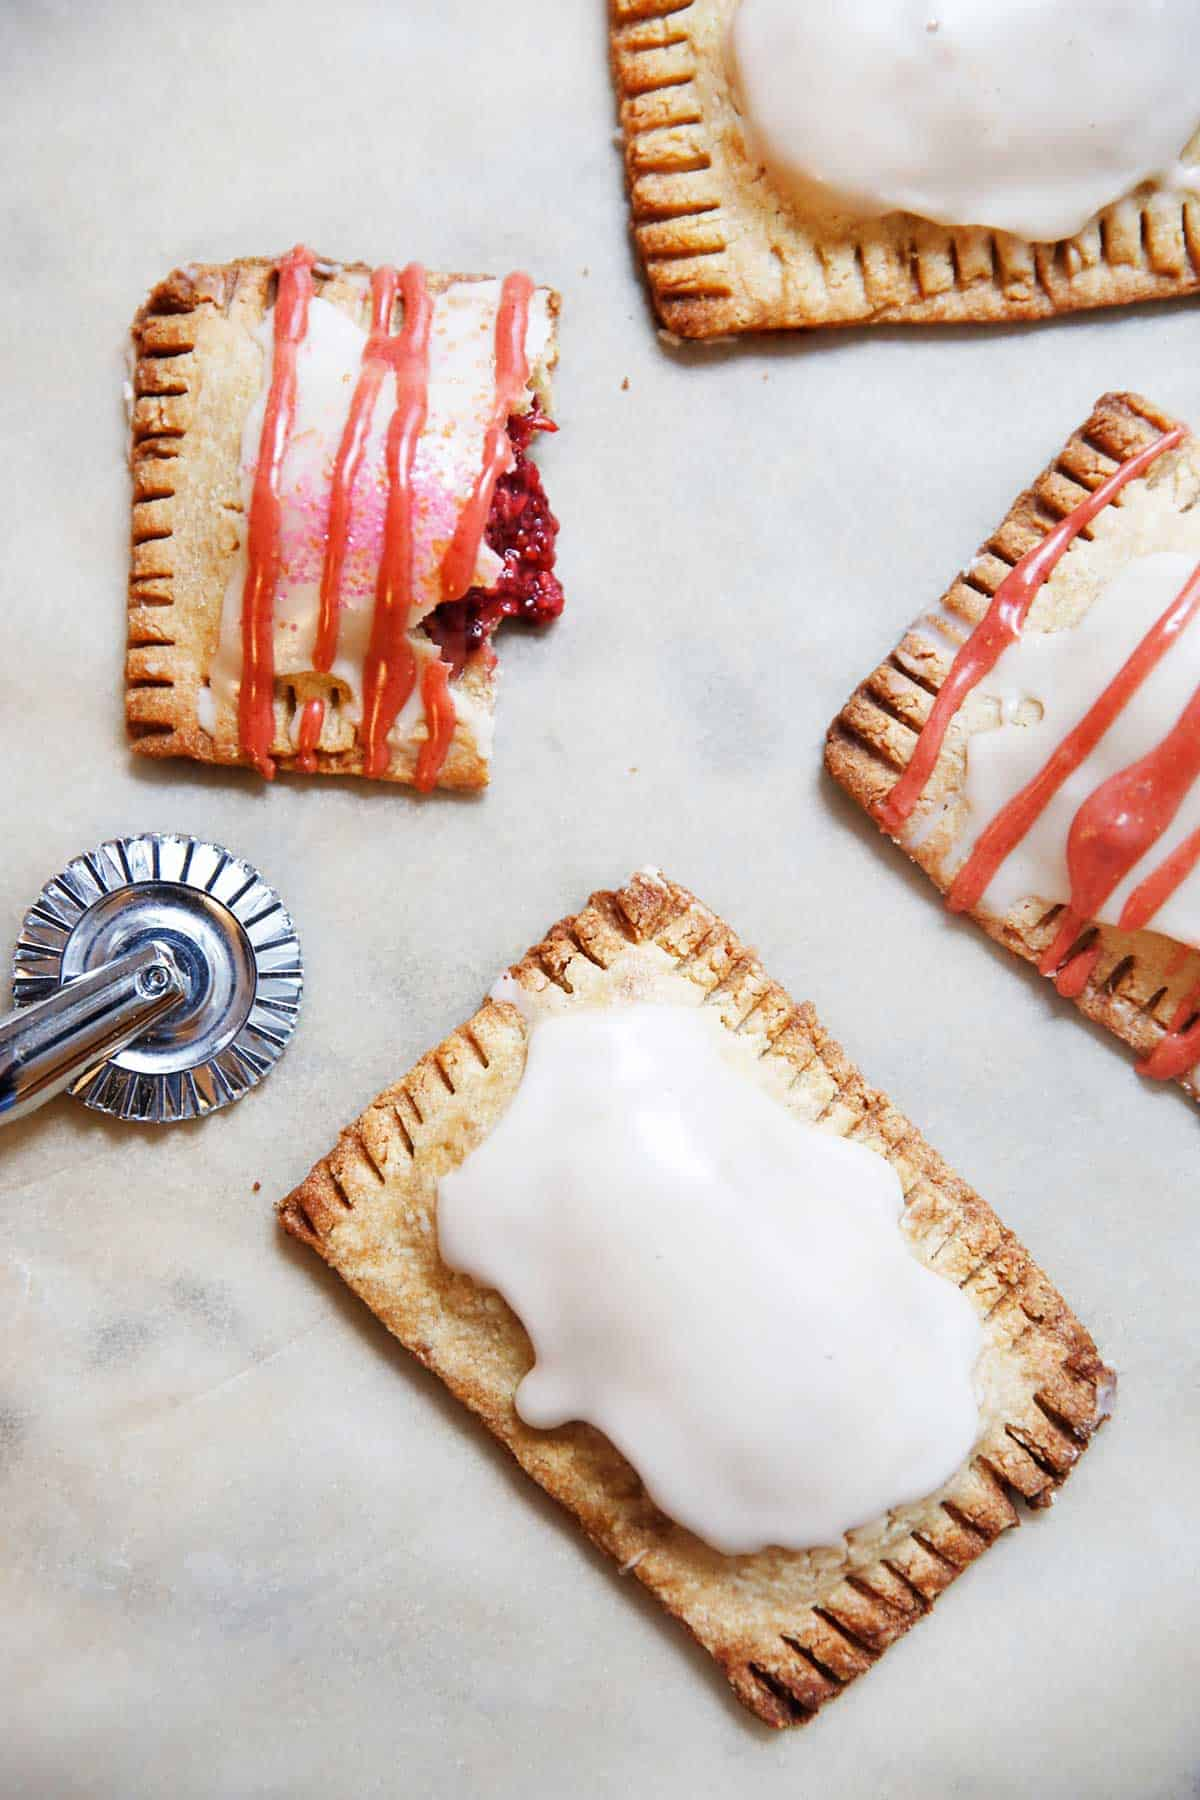 Homemade Healthier Pop Tarts (Gluten-Free + How-To Video)